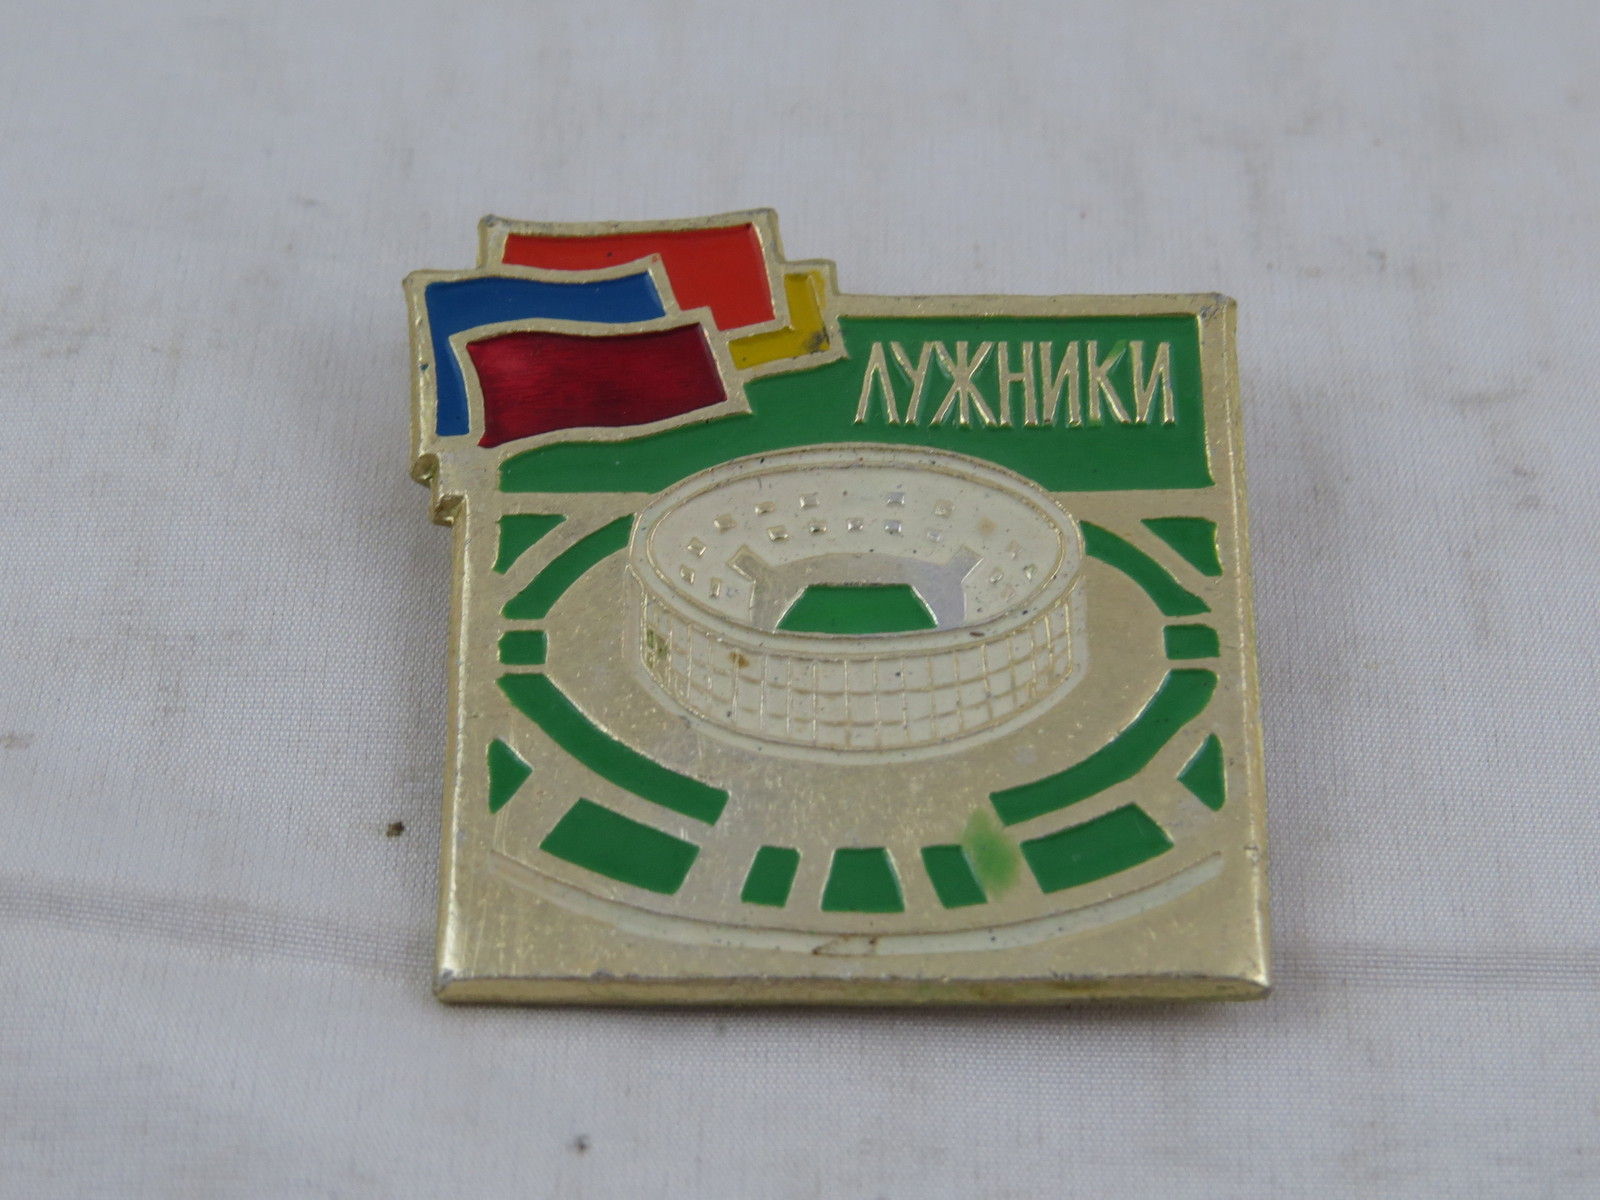 Primary image for 1980 Summer Games Olympic Pin - Luzhniki Stadium - Stamped Pin